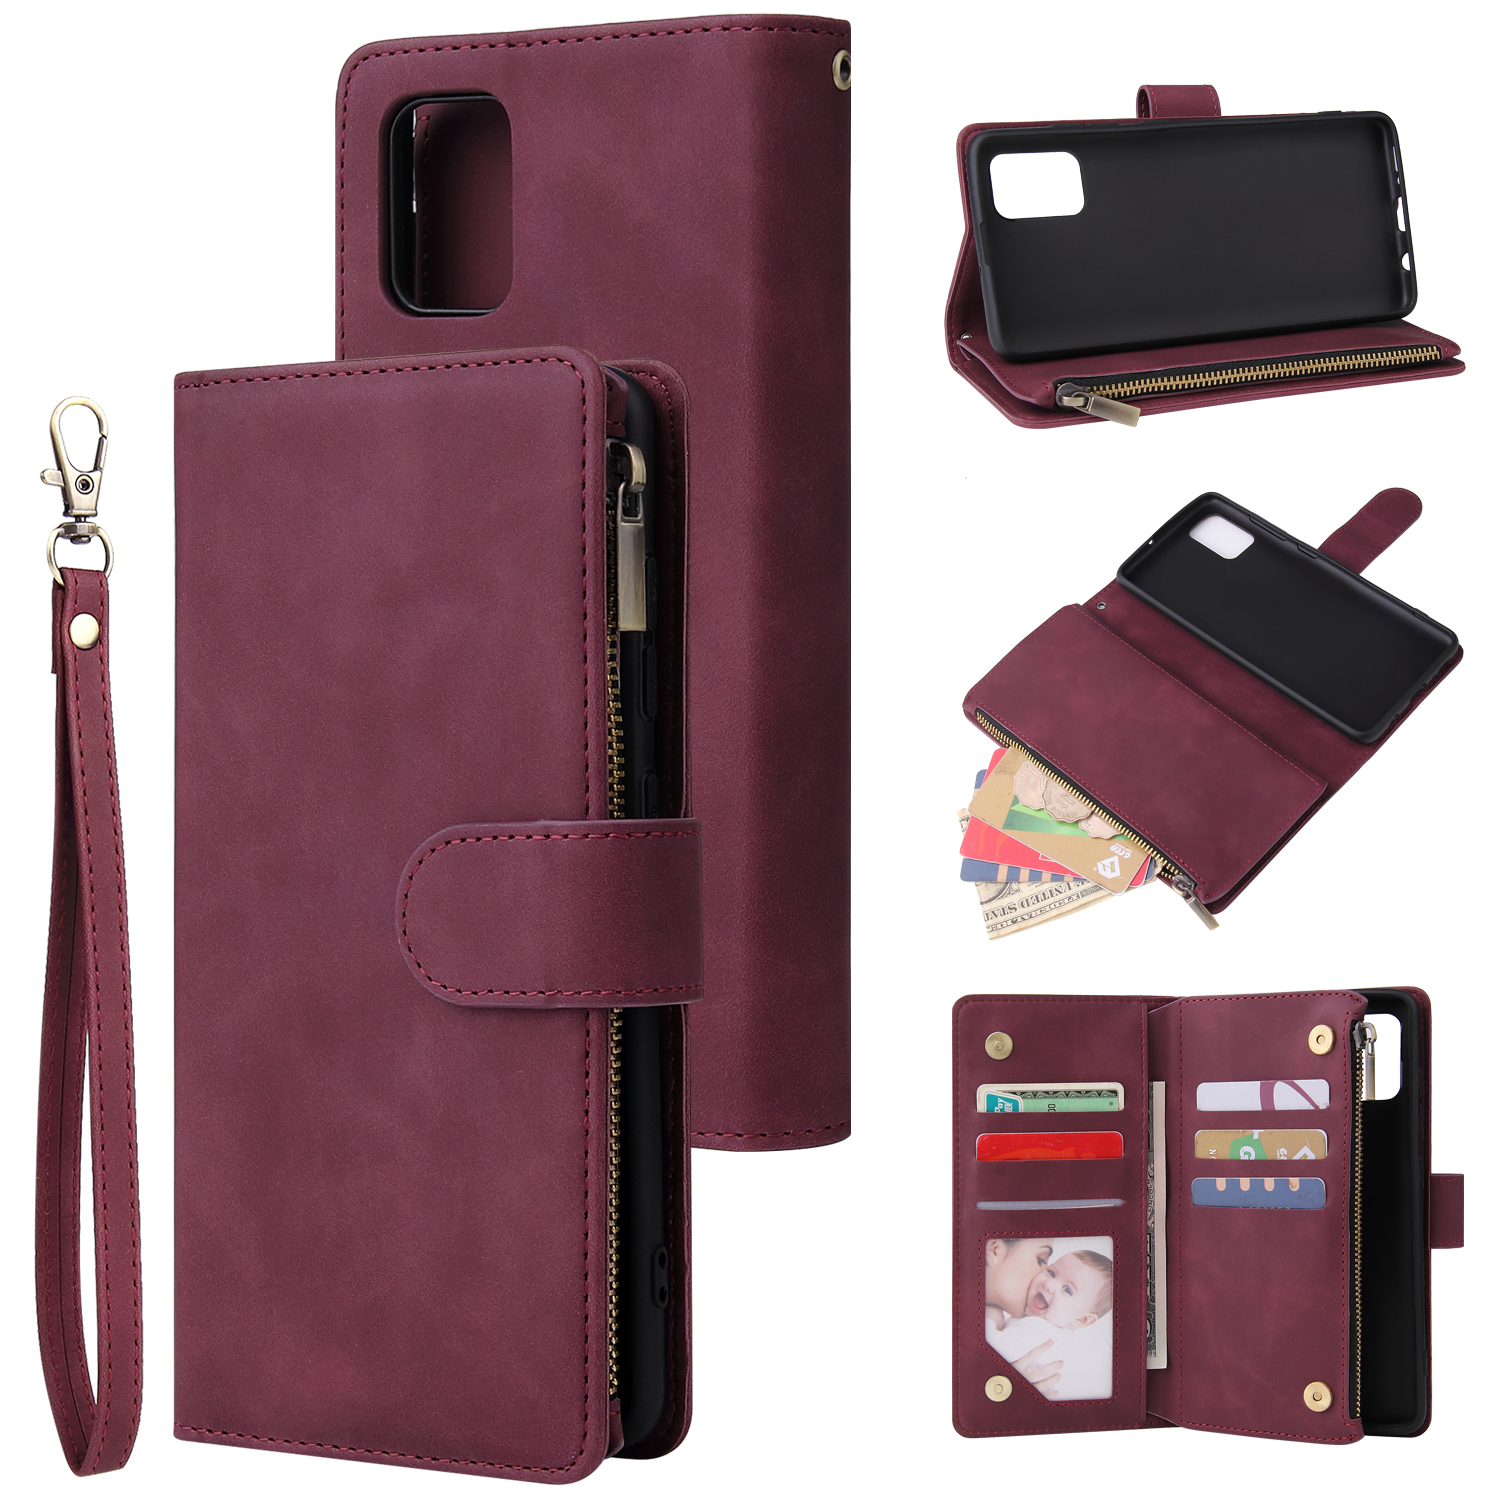 For Samsung A51 Case Smartphone Shell Precise Cutouts Zipper Closure Wallet Design Overall Protection Phone Cover  Wine red